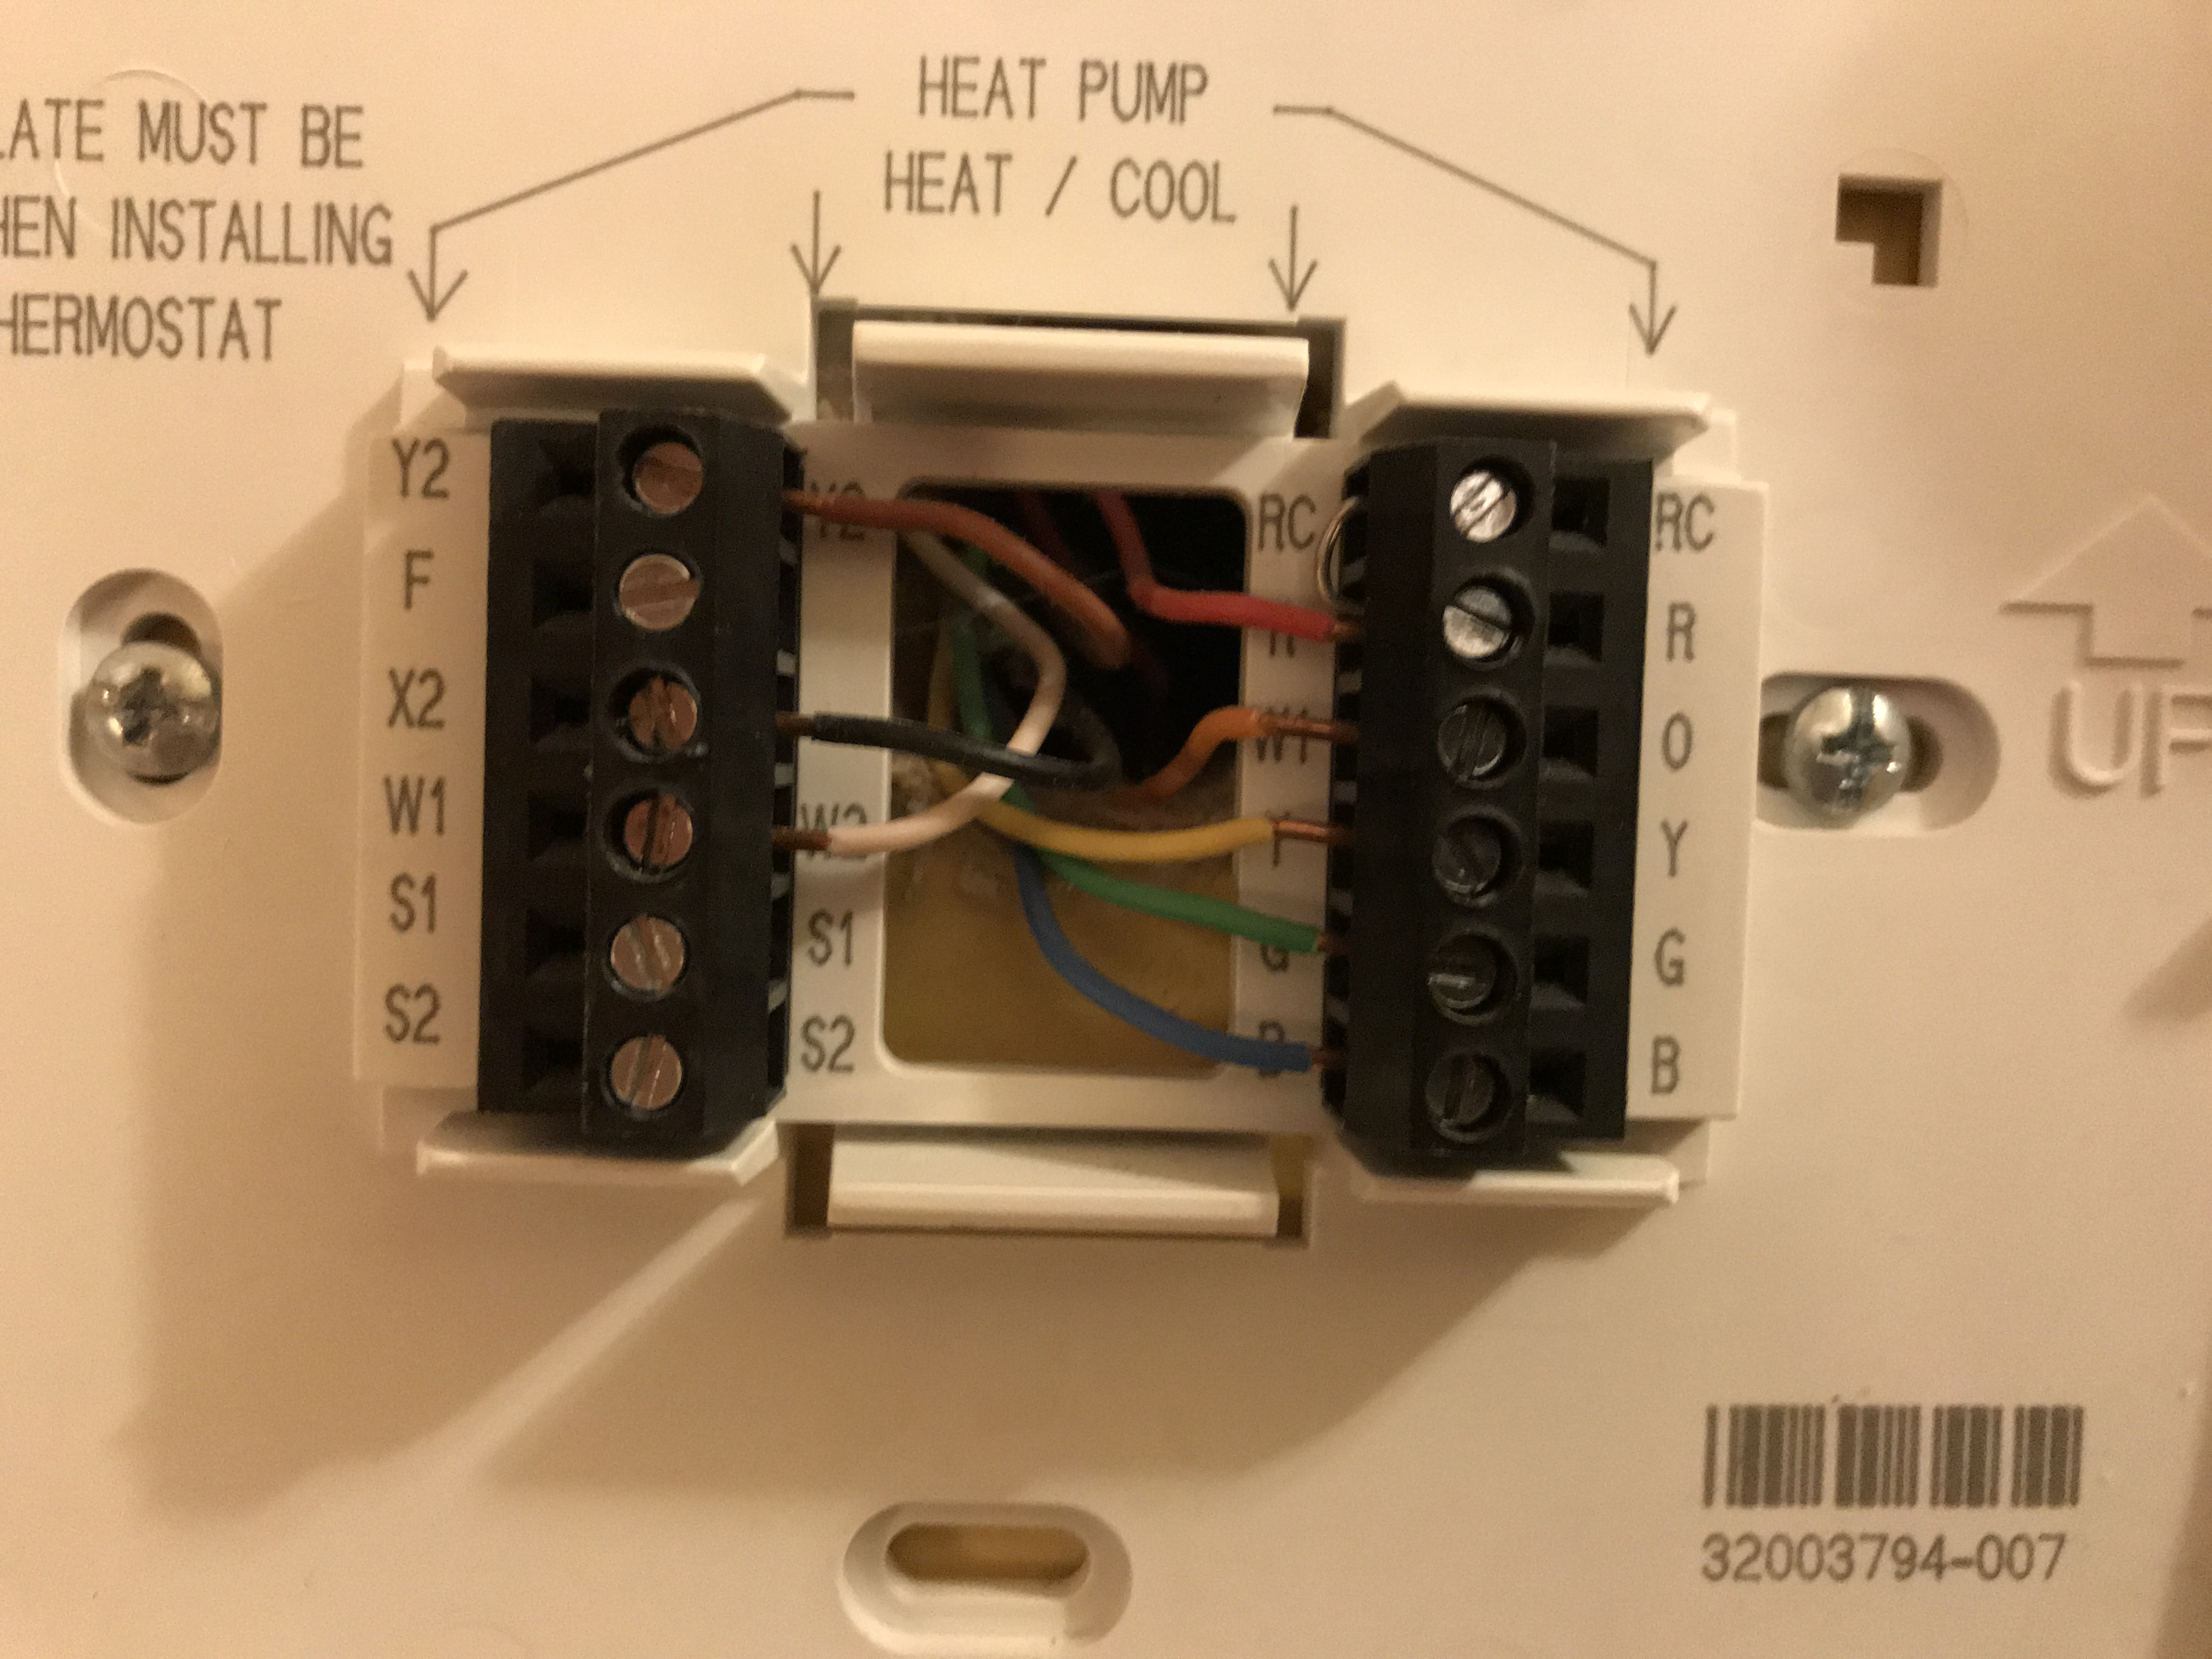 My Trane TCONT800 thermostat lost its backlight when it is plugged